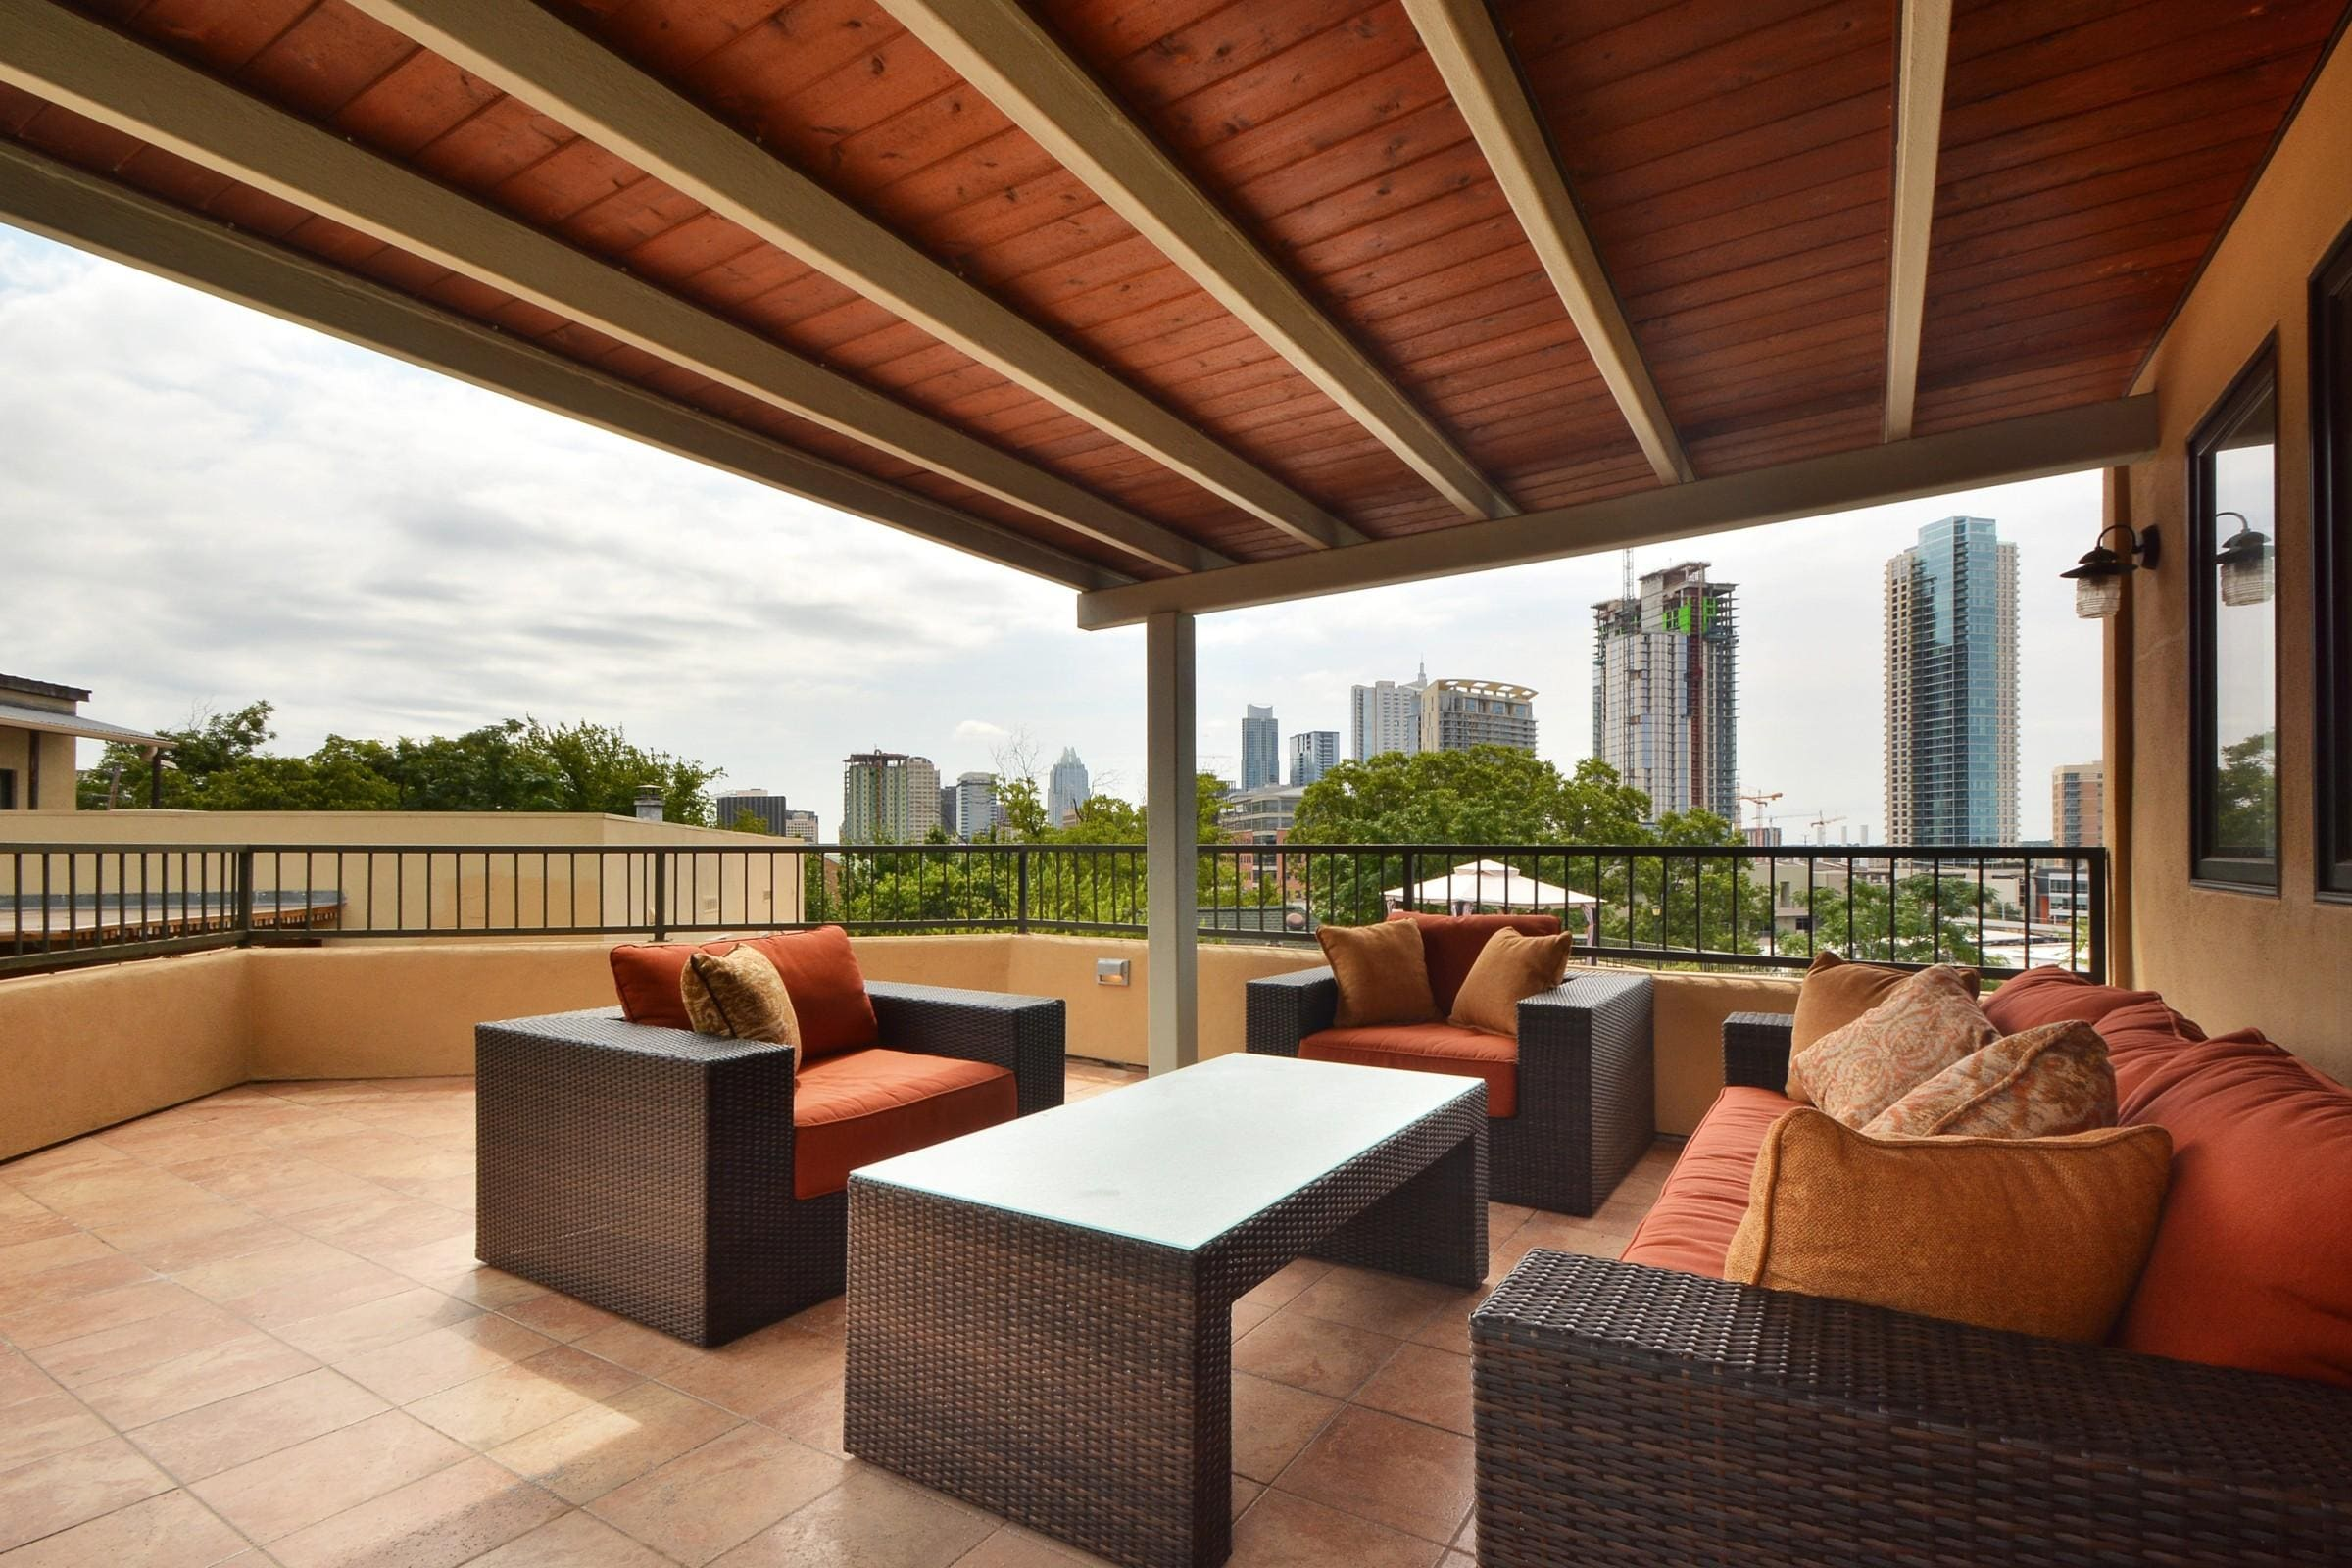 Up the stairs from the main floor, you'll discover an amazing deck and lounge area overlooking downtown Austin.